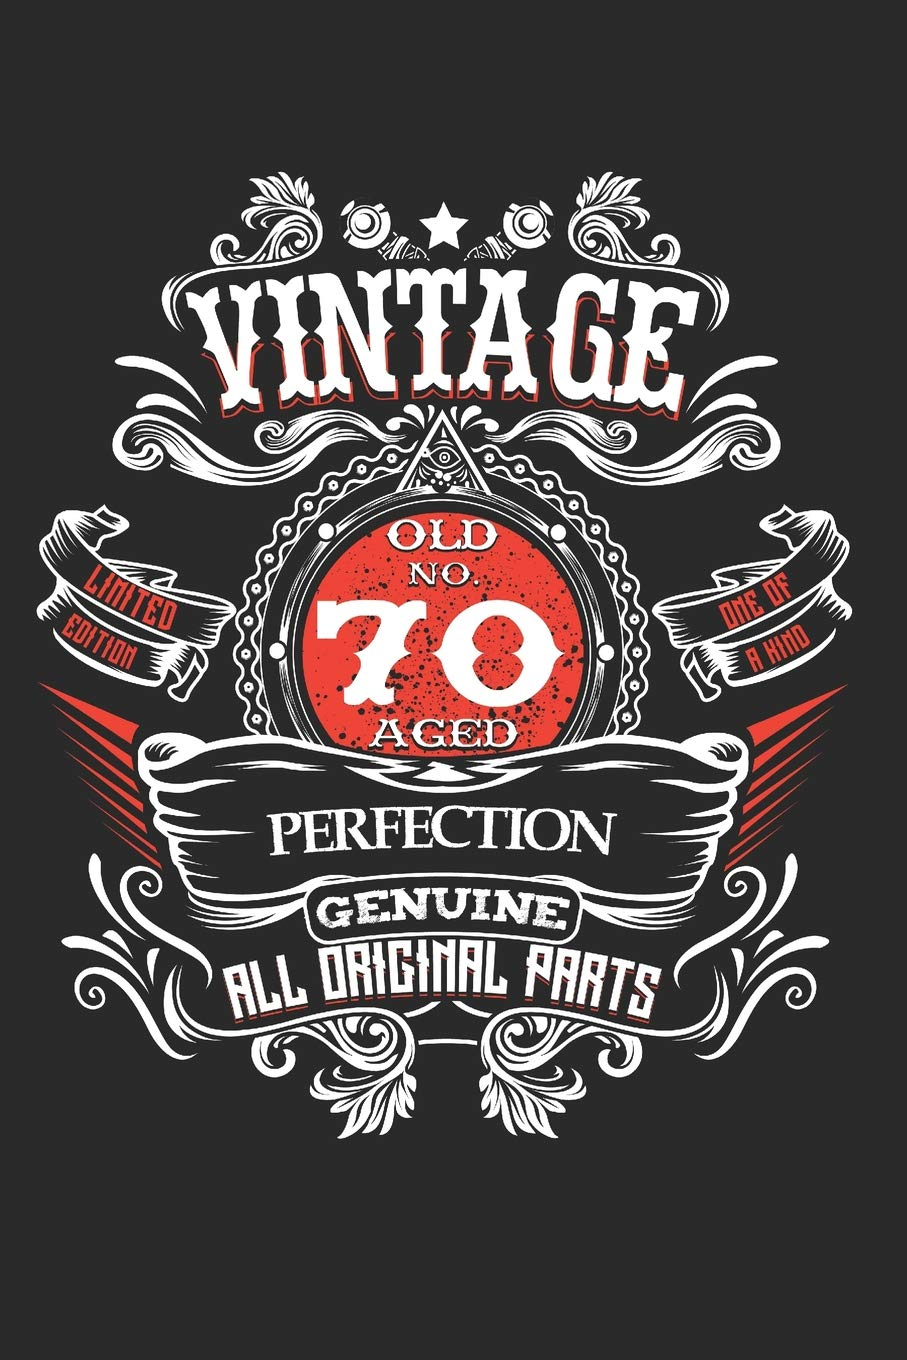 Vintage Old No 70 Aged Perfection Genuine All Original Parts 70th Birthday Party Decorations 1949 Years Milestone Celebration Message Log